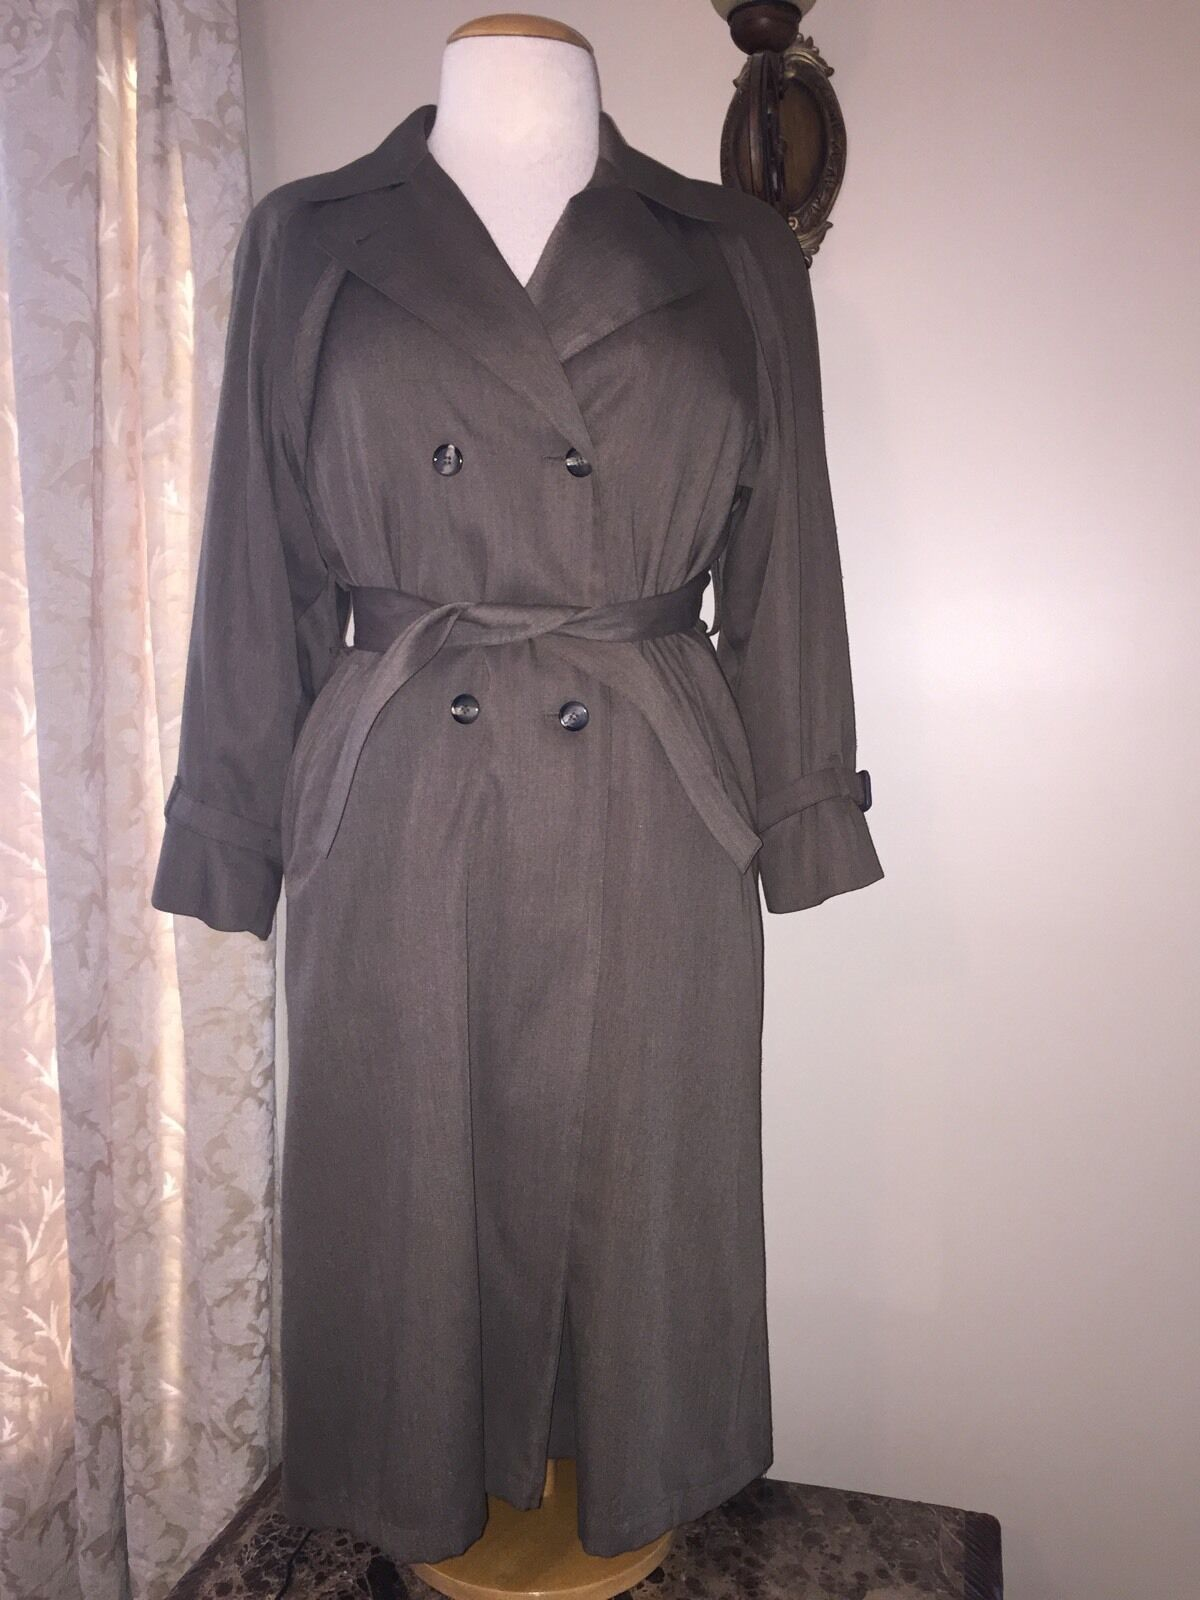 Women's 12p London Fog Double Breasted Trench Coat  Gabriella  Zip Out Lining